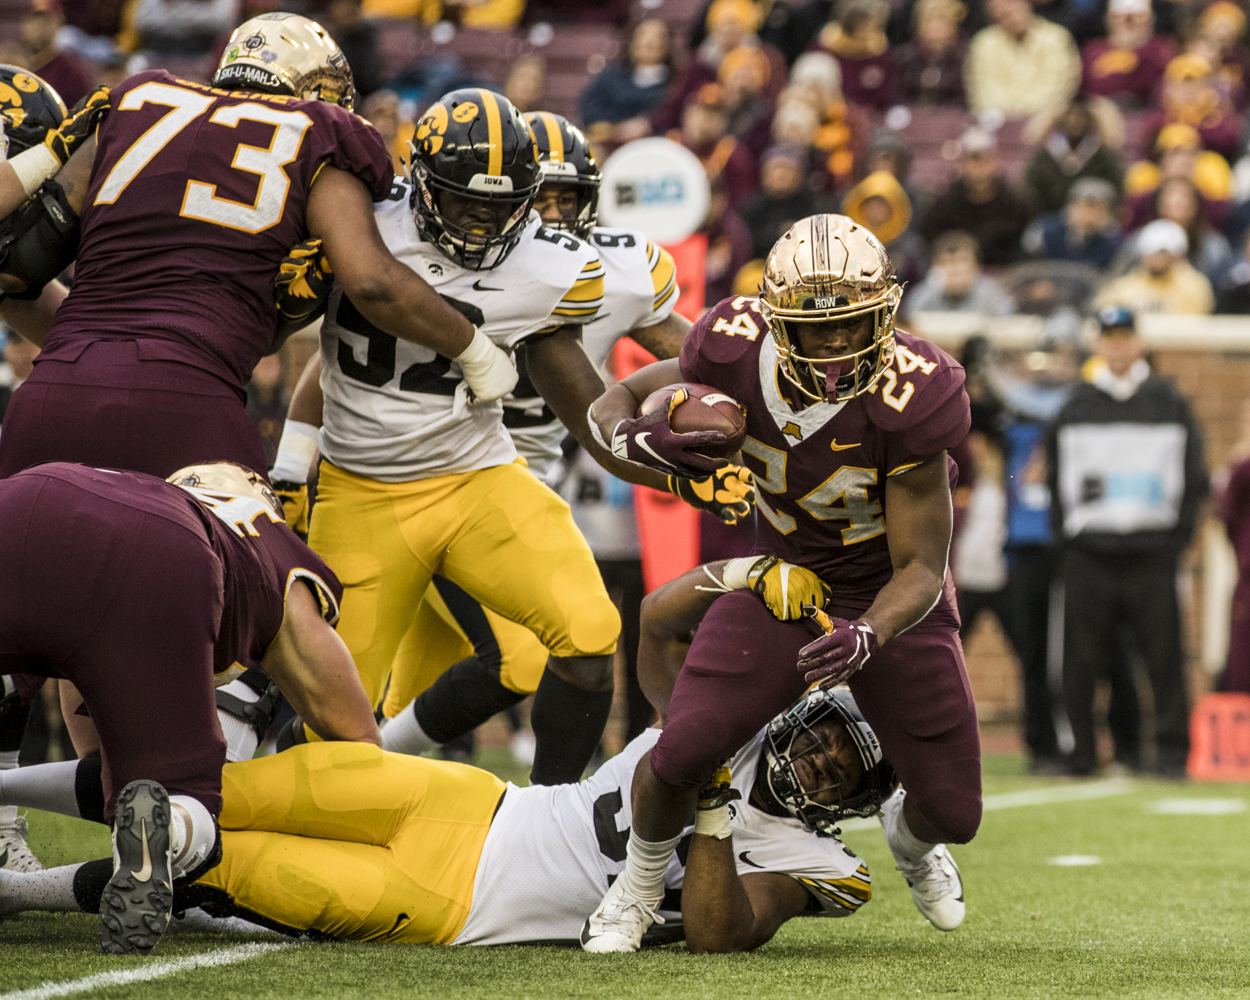 Minnesota+running+back+Mohammed+Ibrahim+carries+the+ball+during+Iowa%27s+game+against+Minnesota+at+TCF+Bank+Stadium+on+Saturday%2C+October+6%2C+2018.+The+Hawkeyes+defeated+the+Golden+Gophers+48-31.